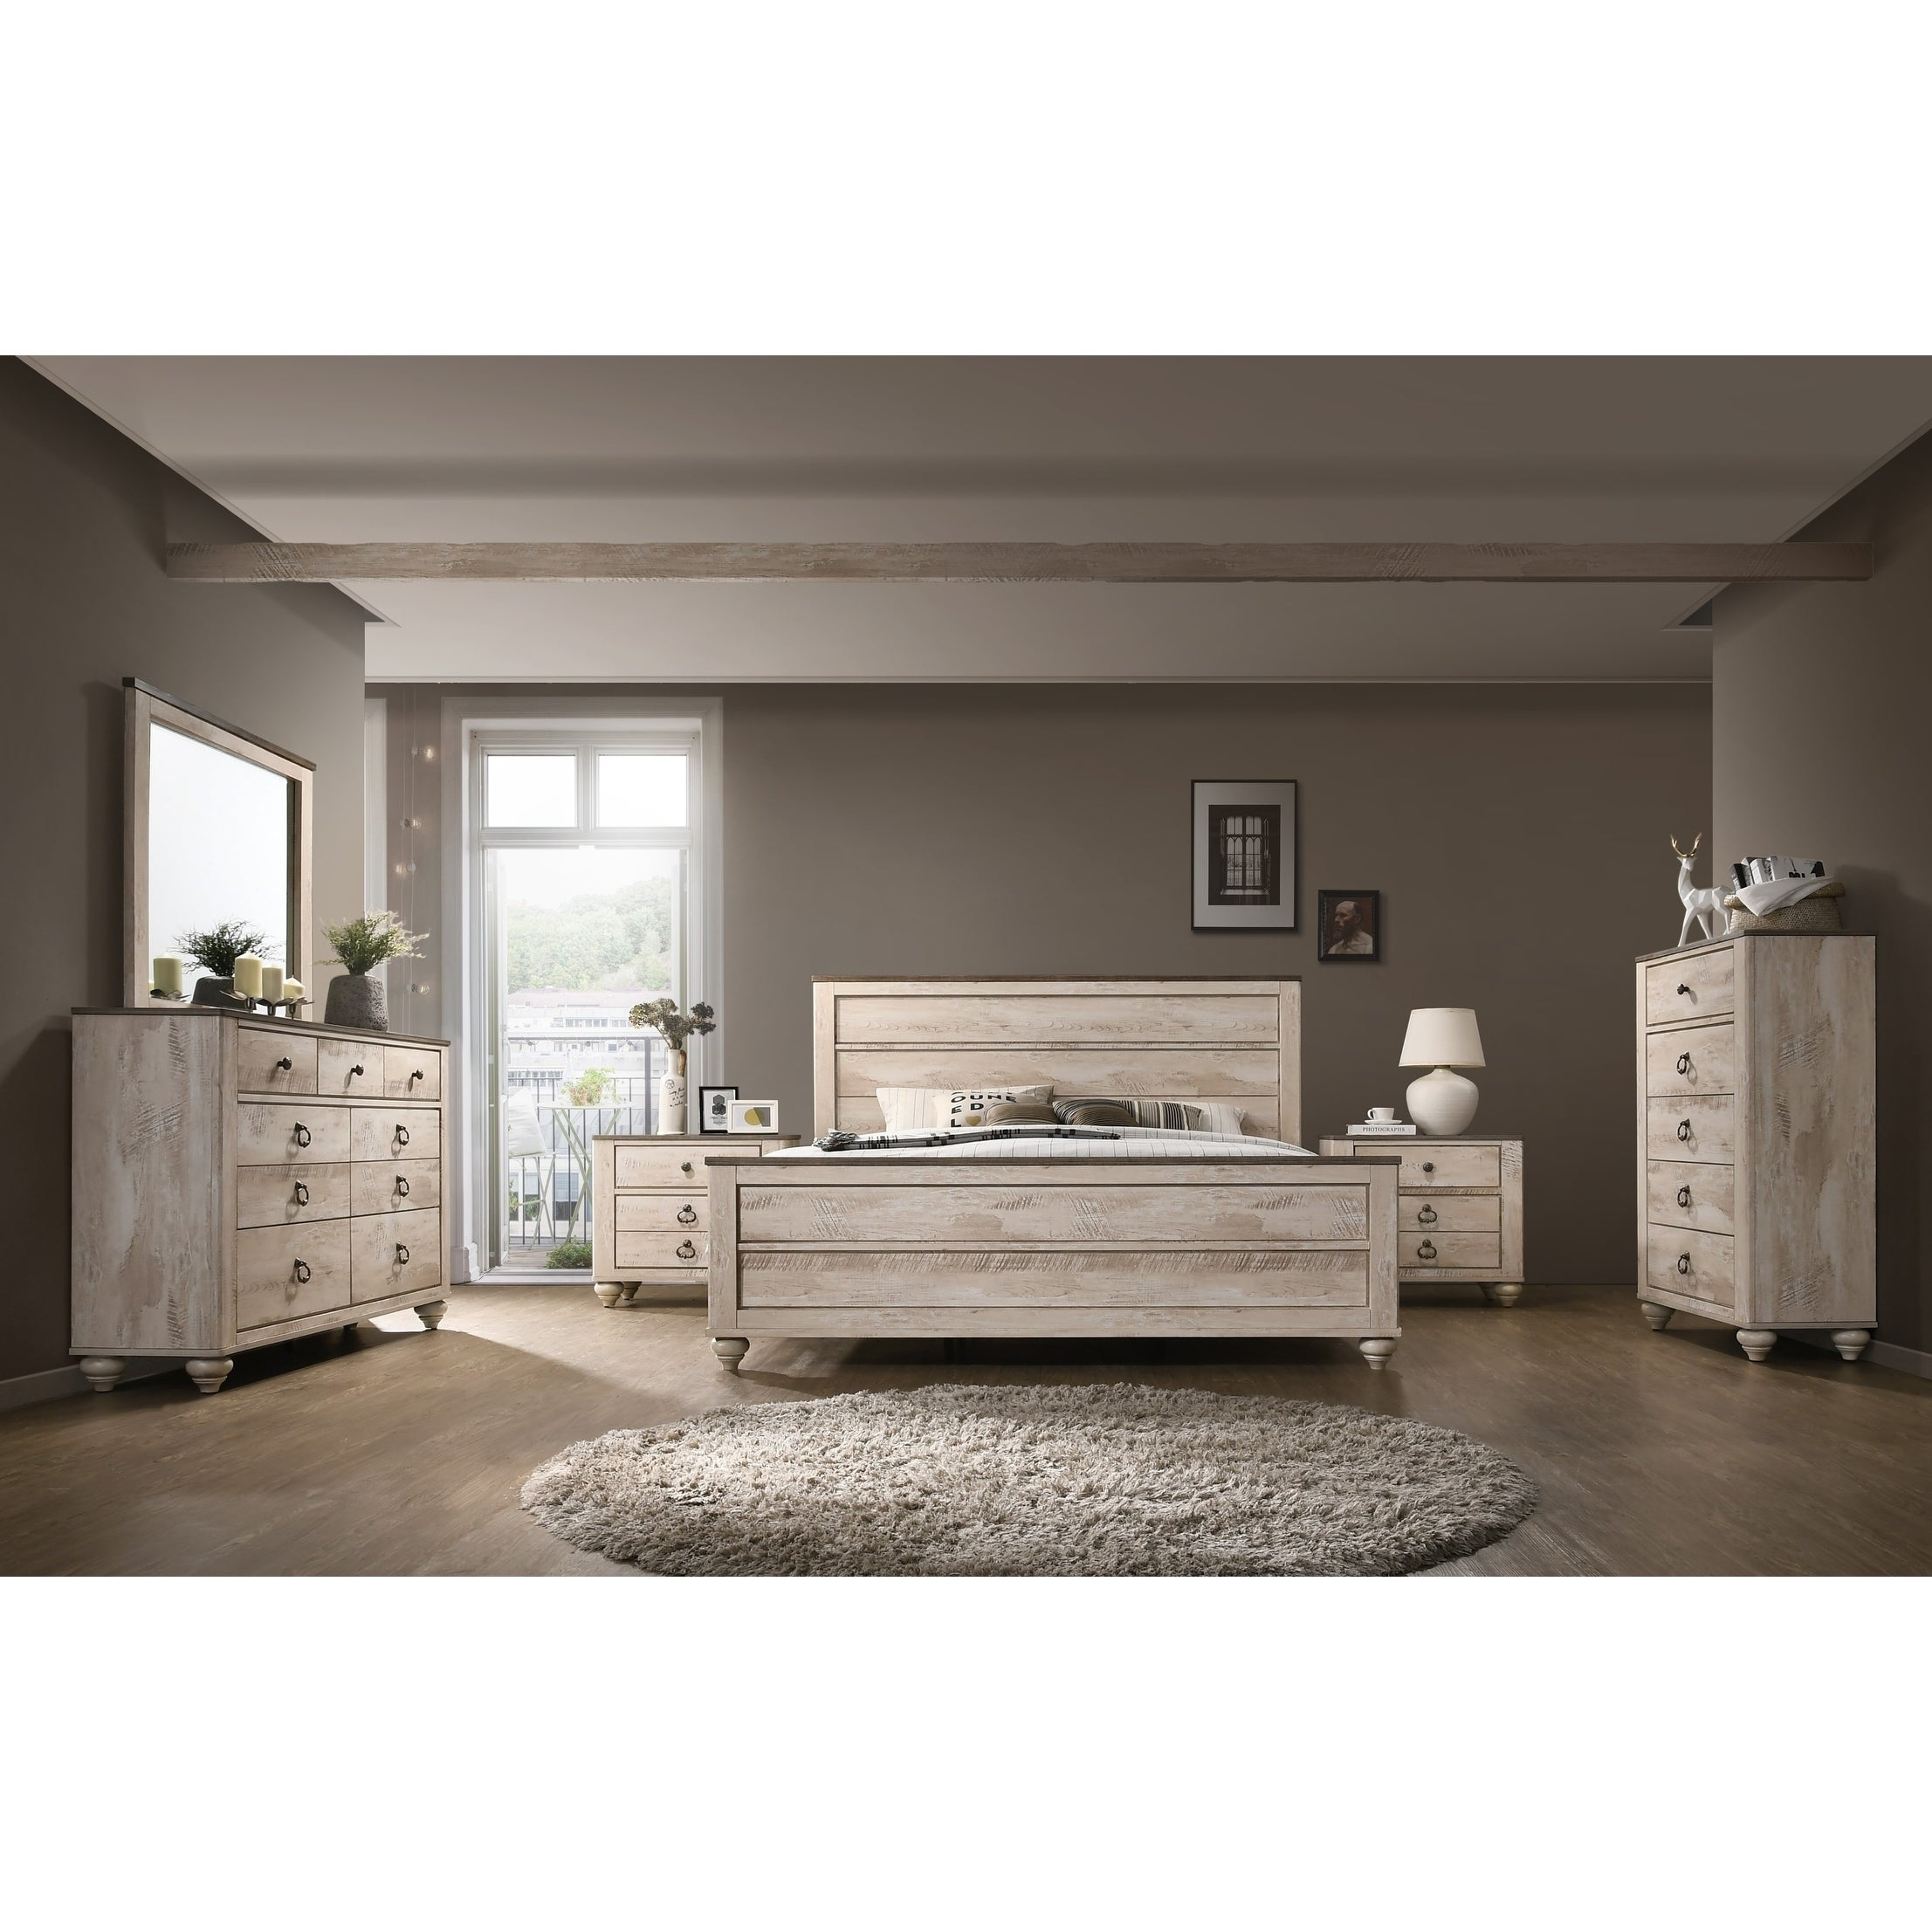 Imerland Contemporary White Wash Finish 6 Piece Bedroom Set, King